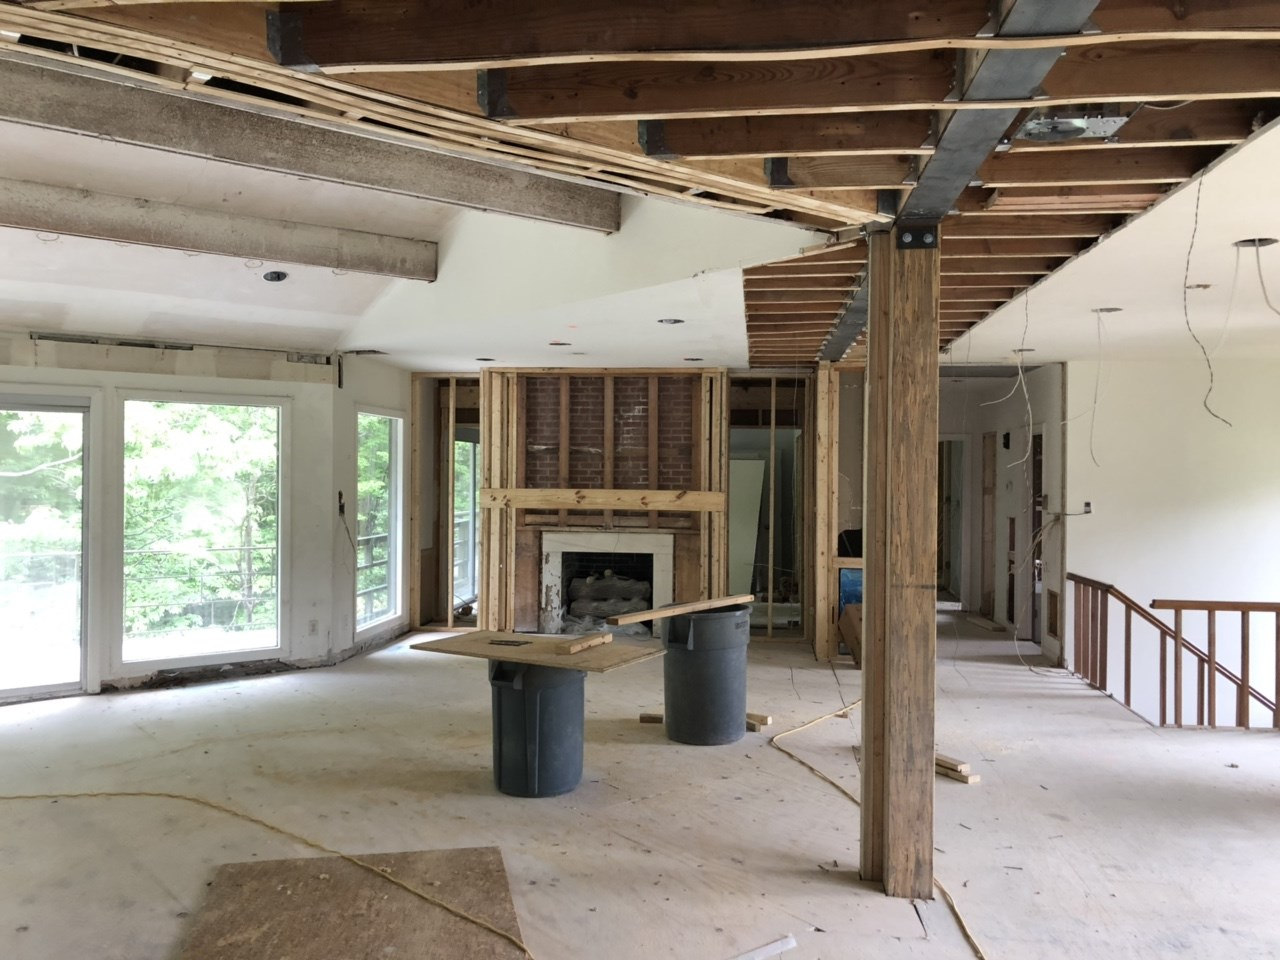 The new open living space will get new flooring and the fireplace will get a facelift.